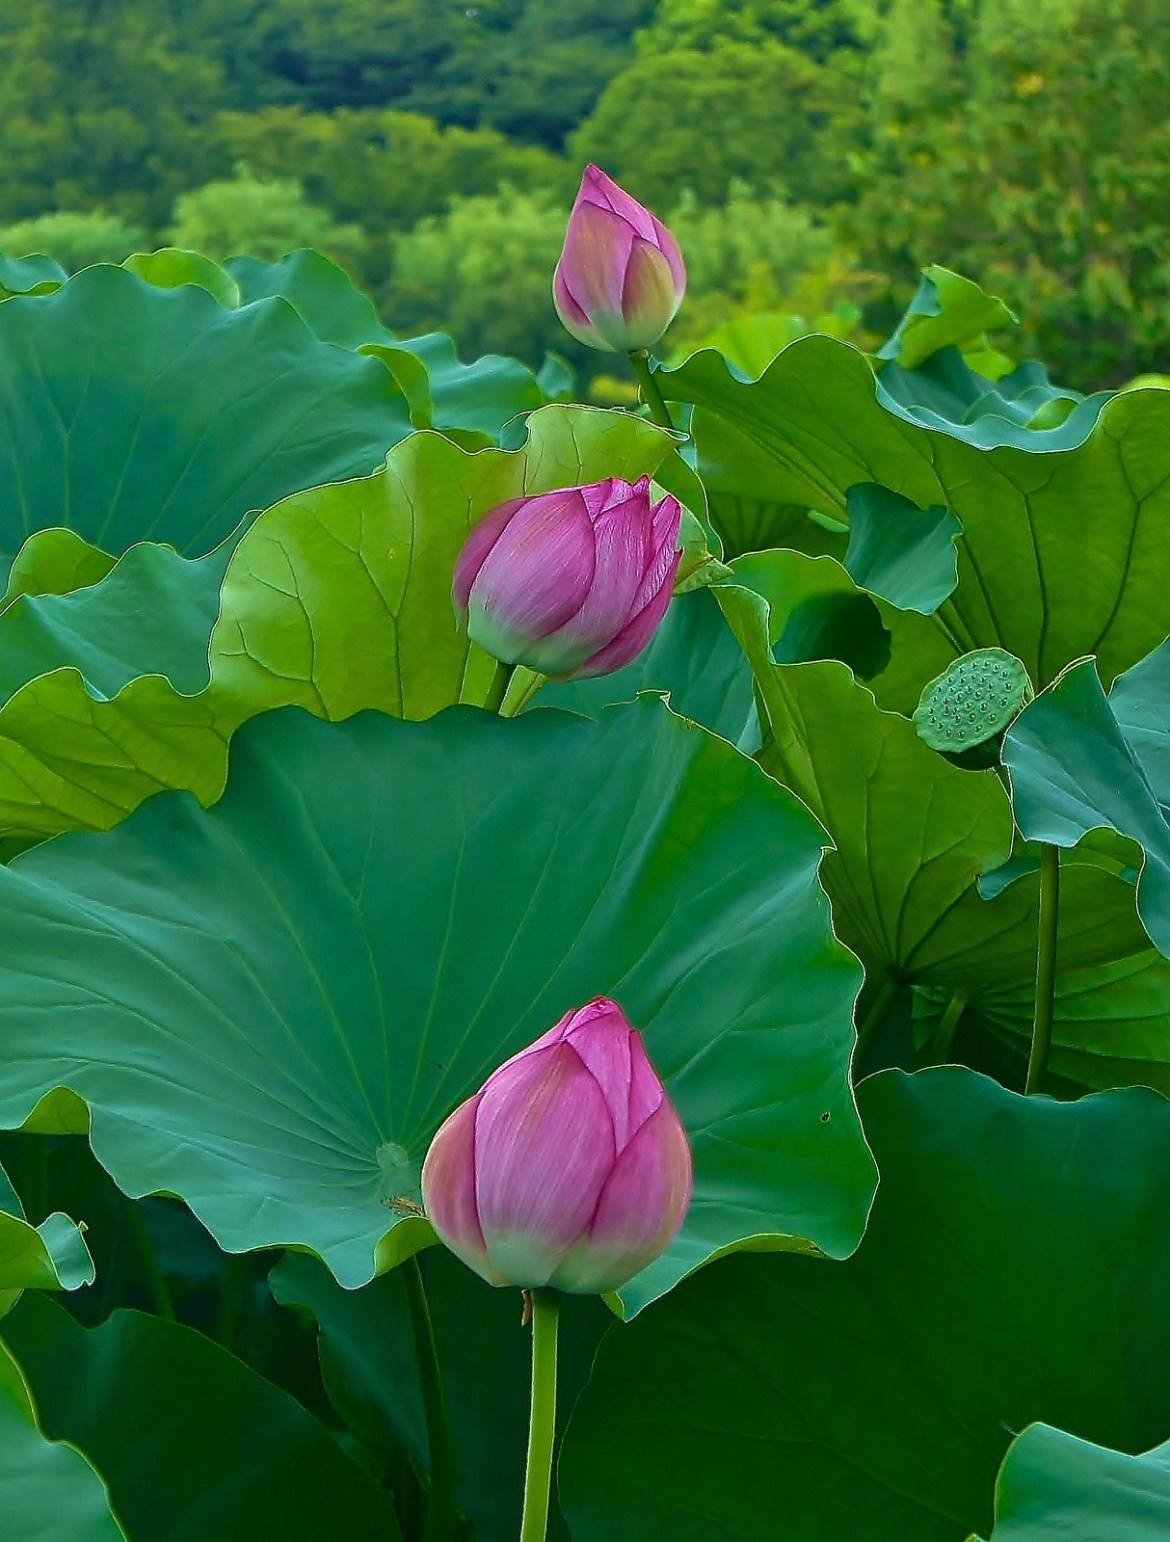 Lotus flowers at Shinobazu Pond